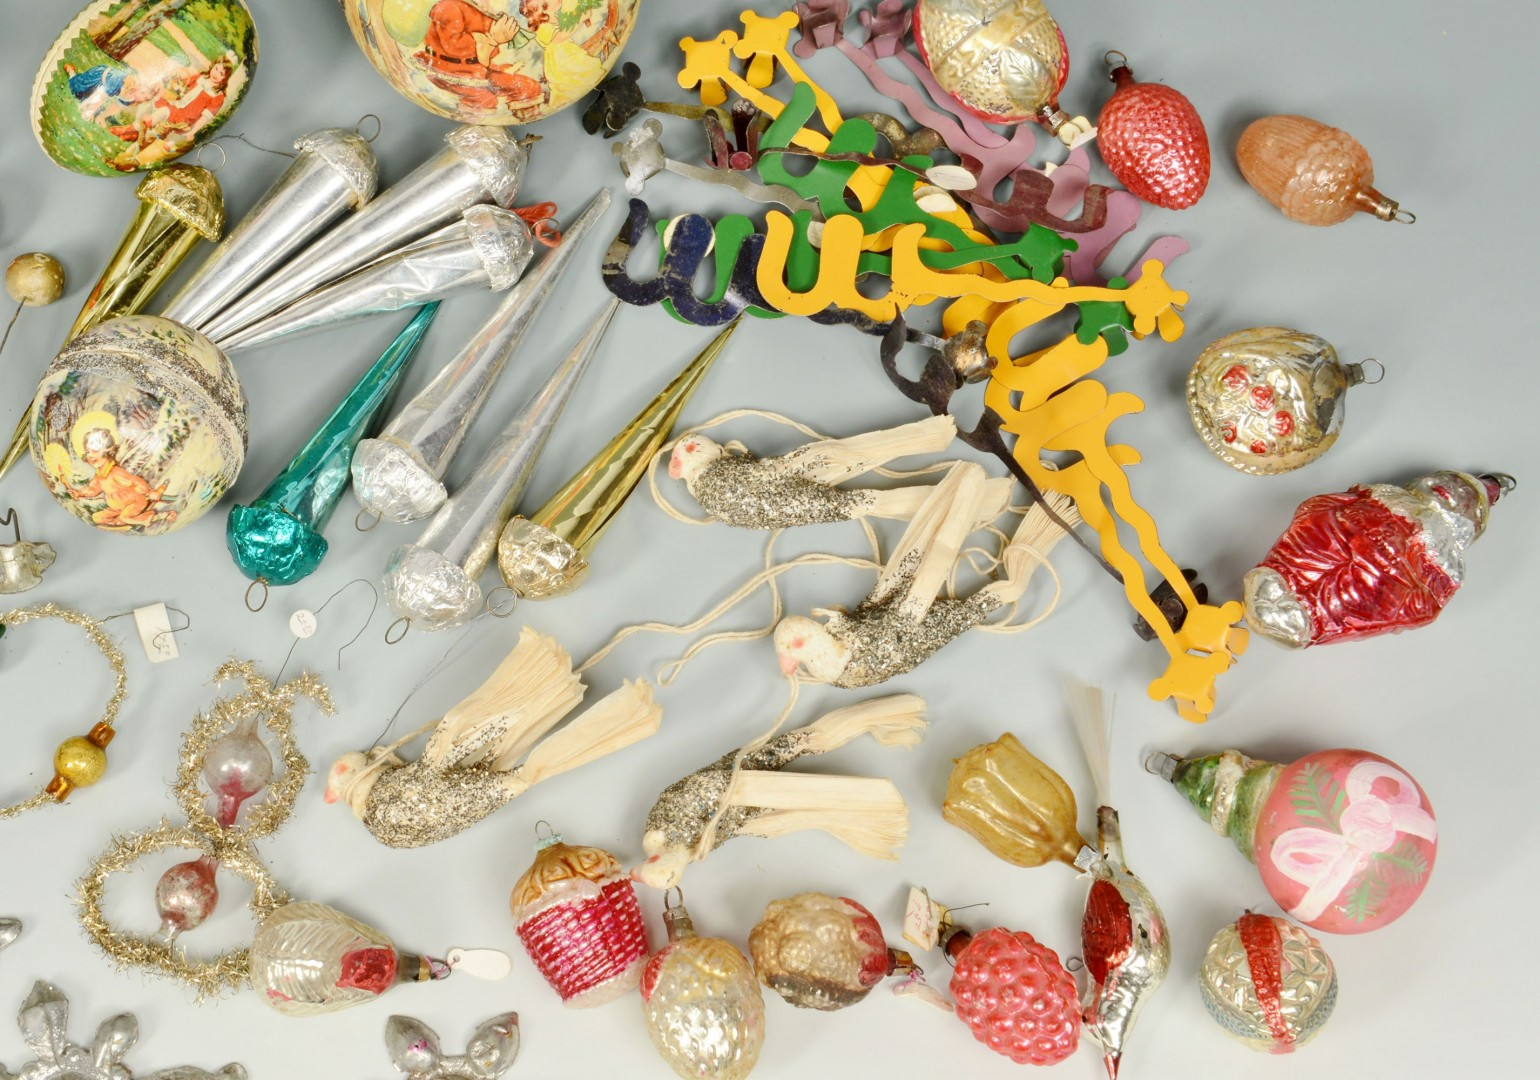 Lot 662: Grouping of 67 Assorted Christmas Decorations